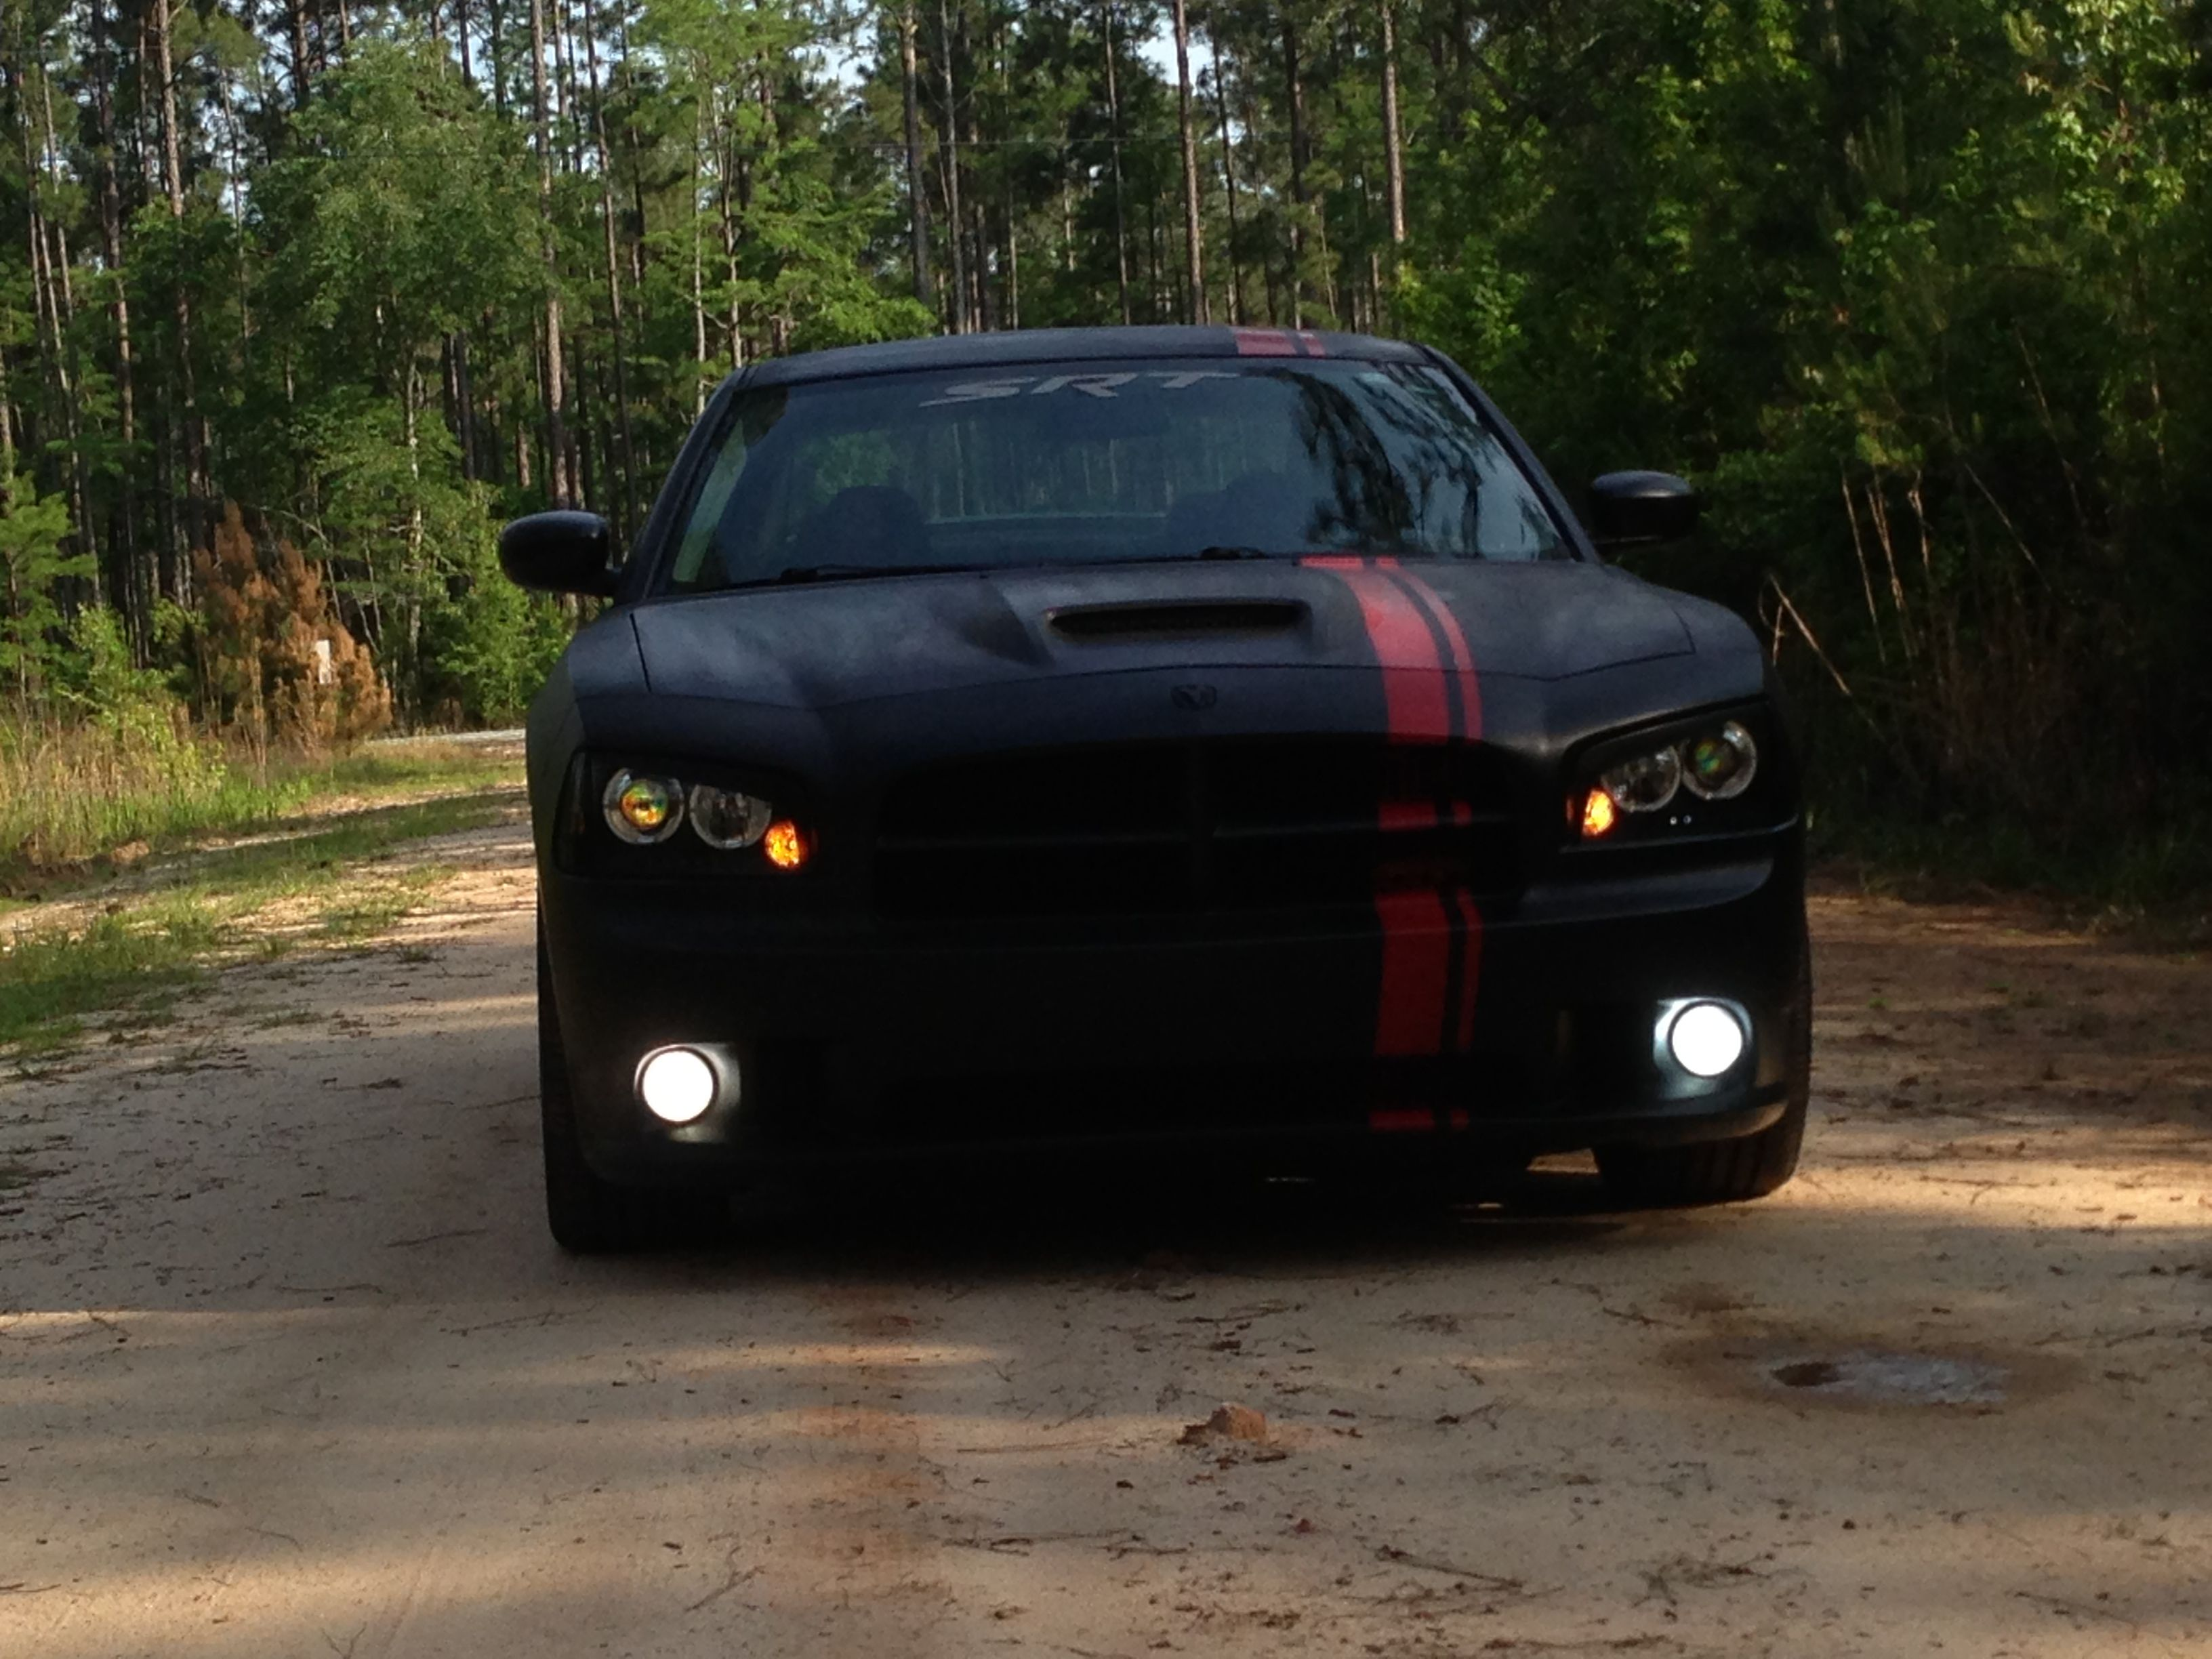 houston clear charger ram chrysler dodge tx jeep image gallery lake